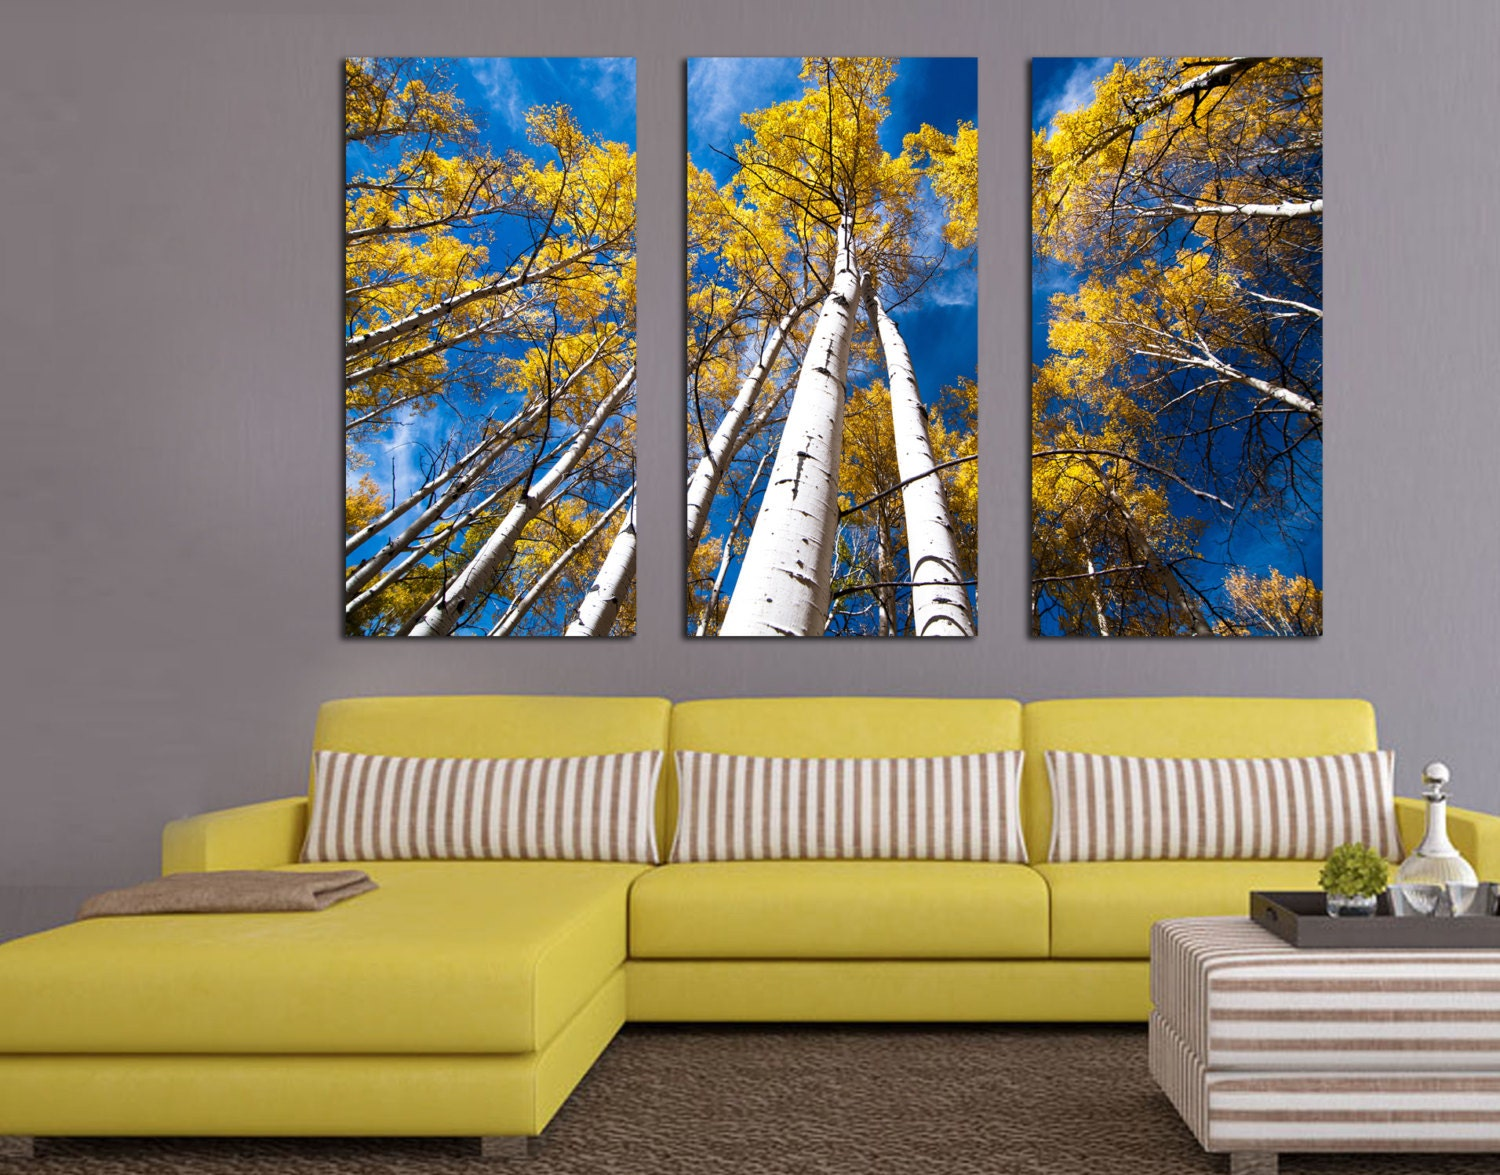 Aspen Trees and Blue Skies. 3 Panel Split Triptych Canvas | Etsy